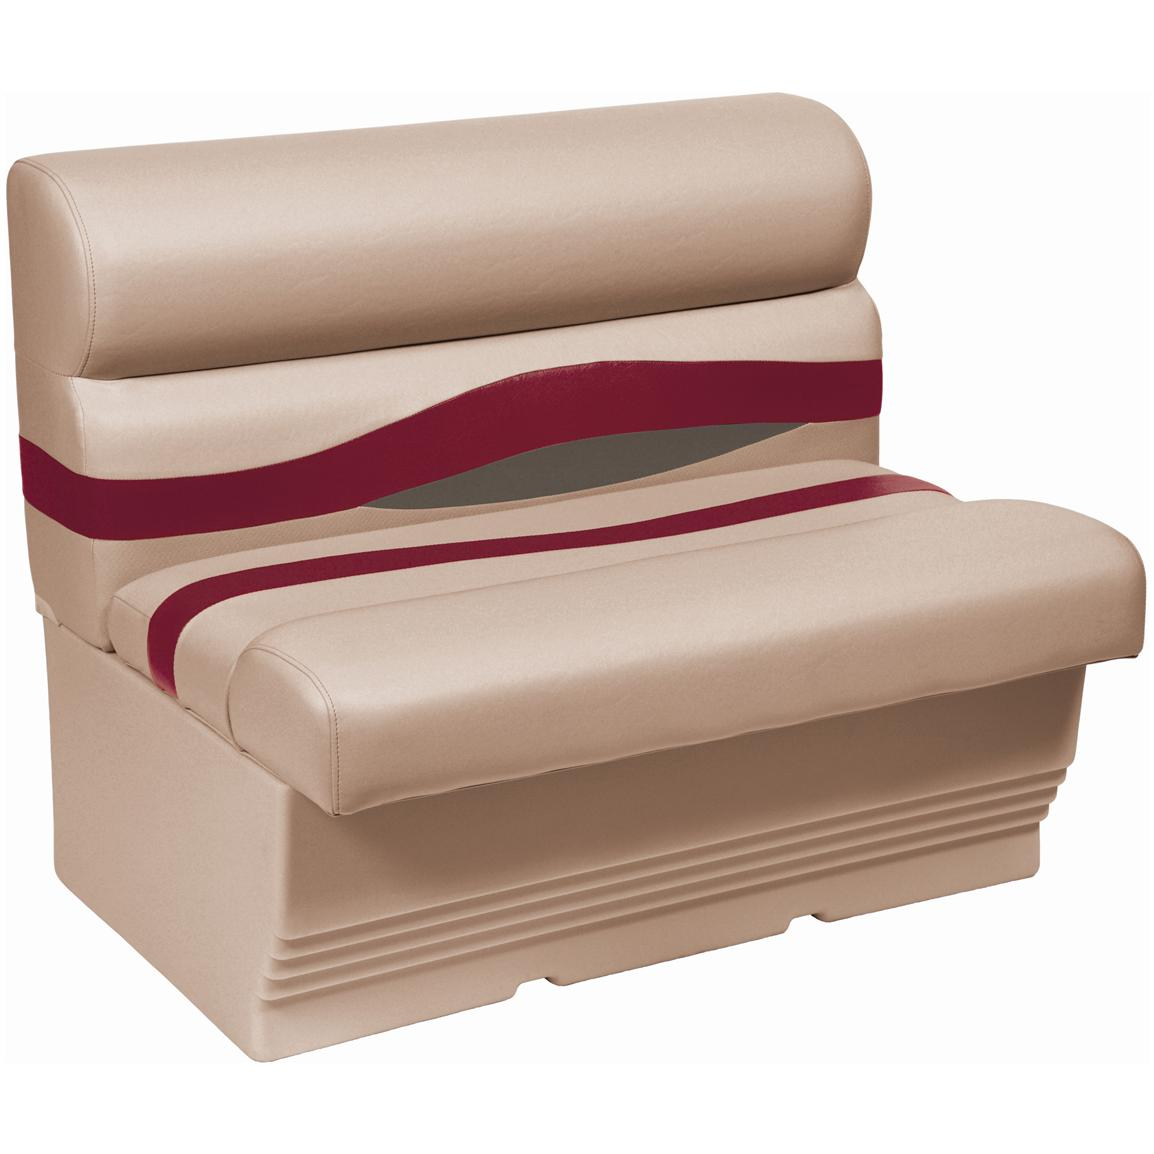 "Wise® Premier 45"" Pontoon Bench Seat, Color E - Mocha Java Punch / Dark Red / Rock Salt"